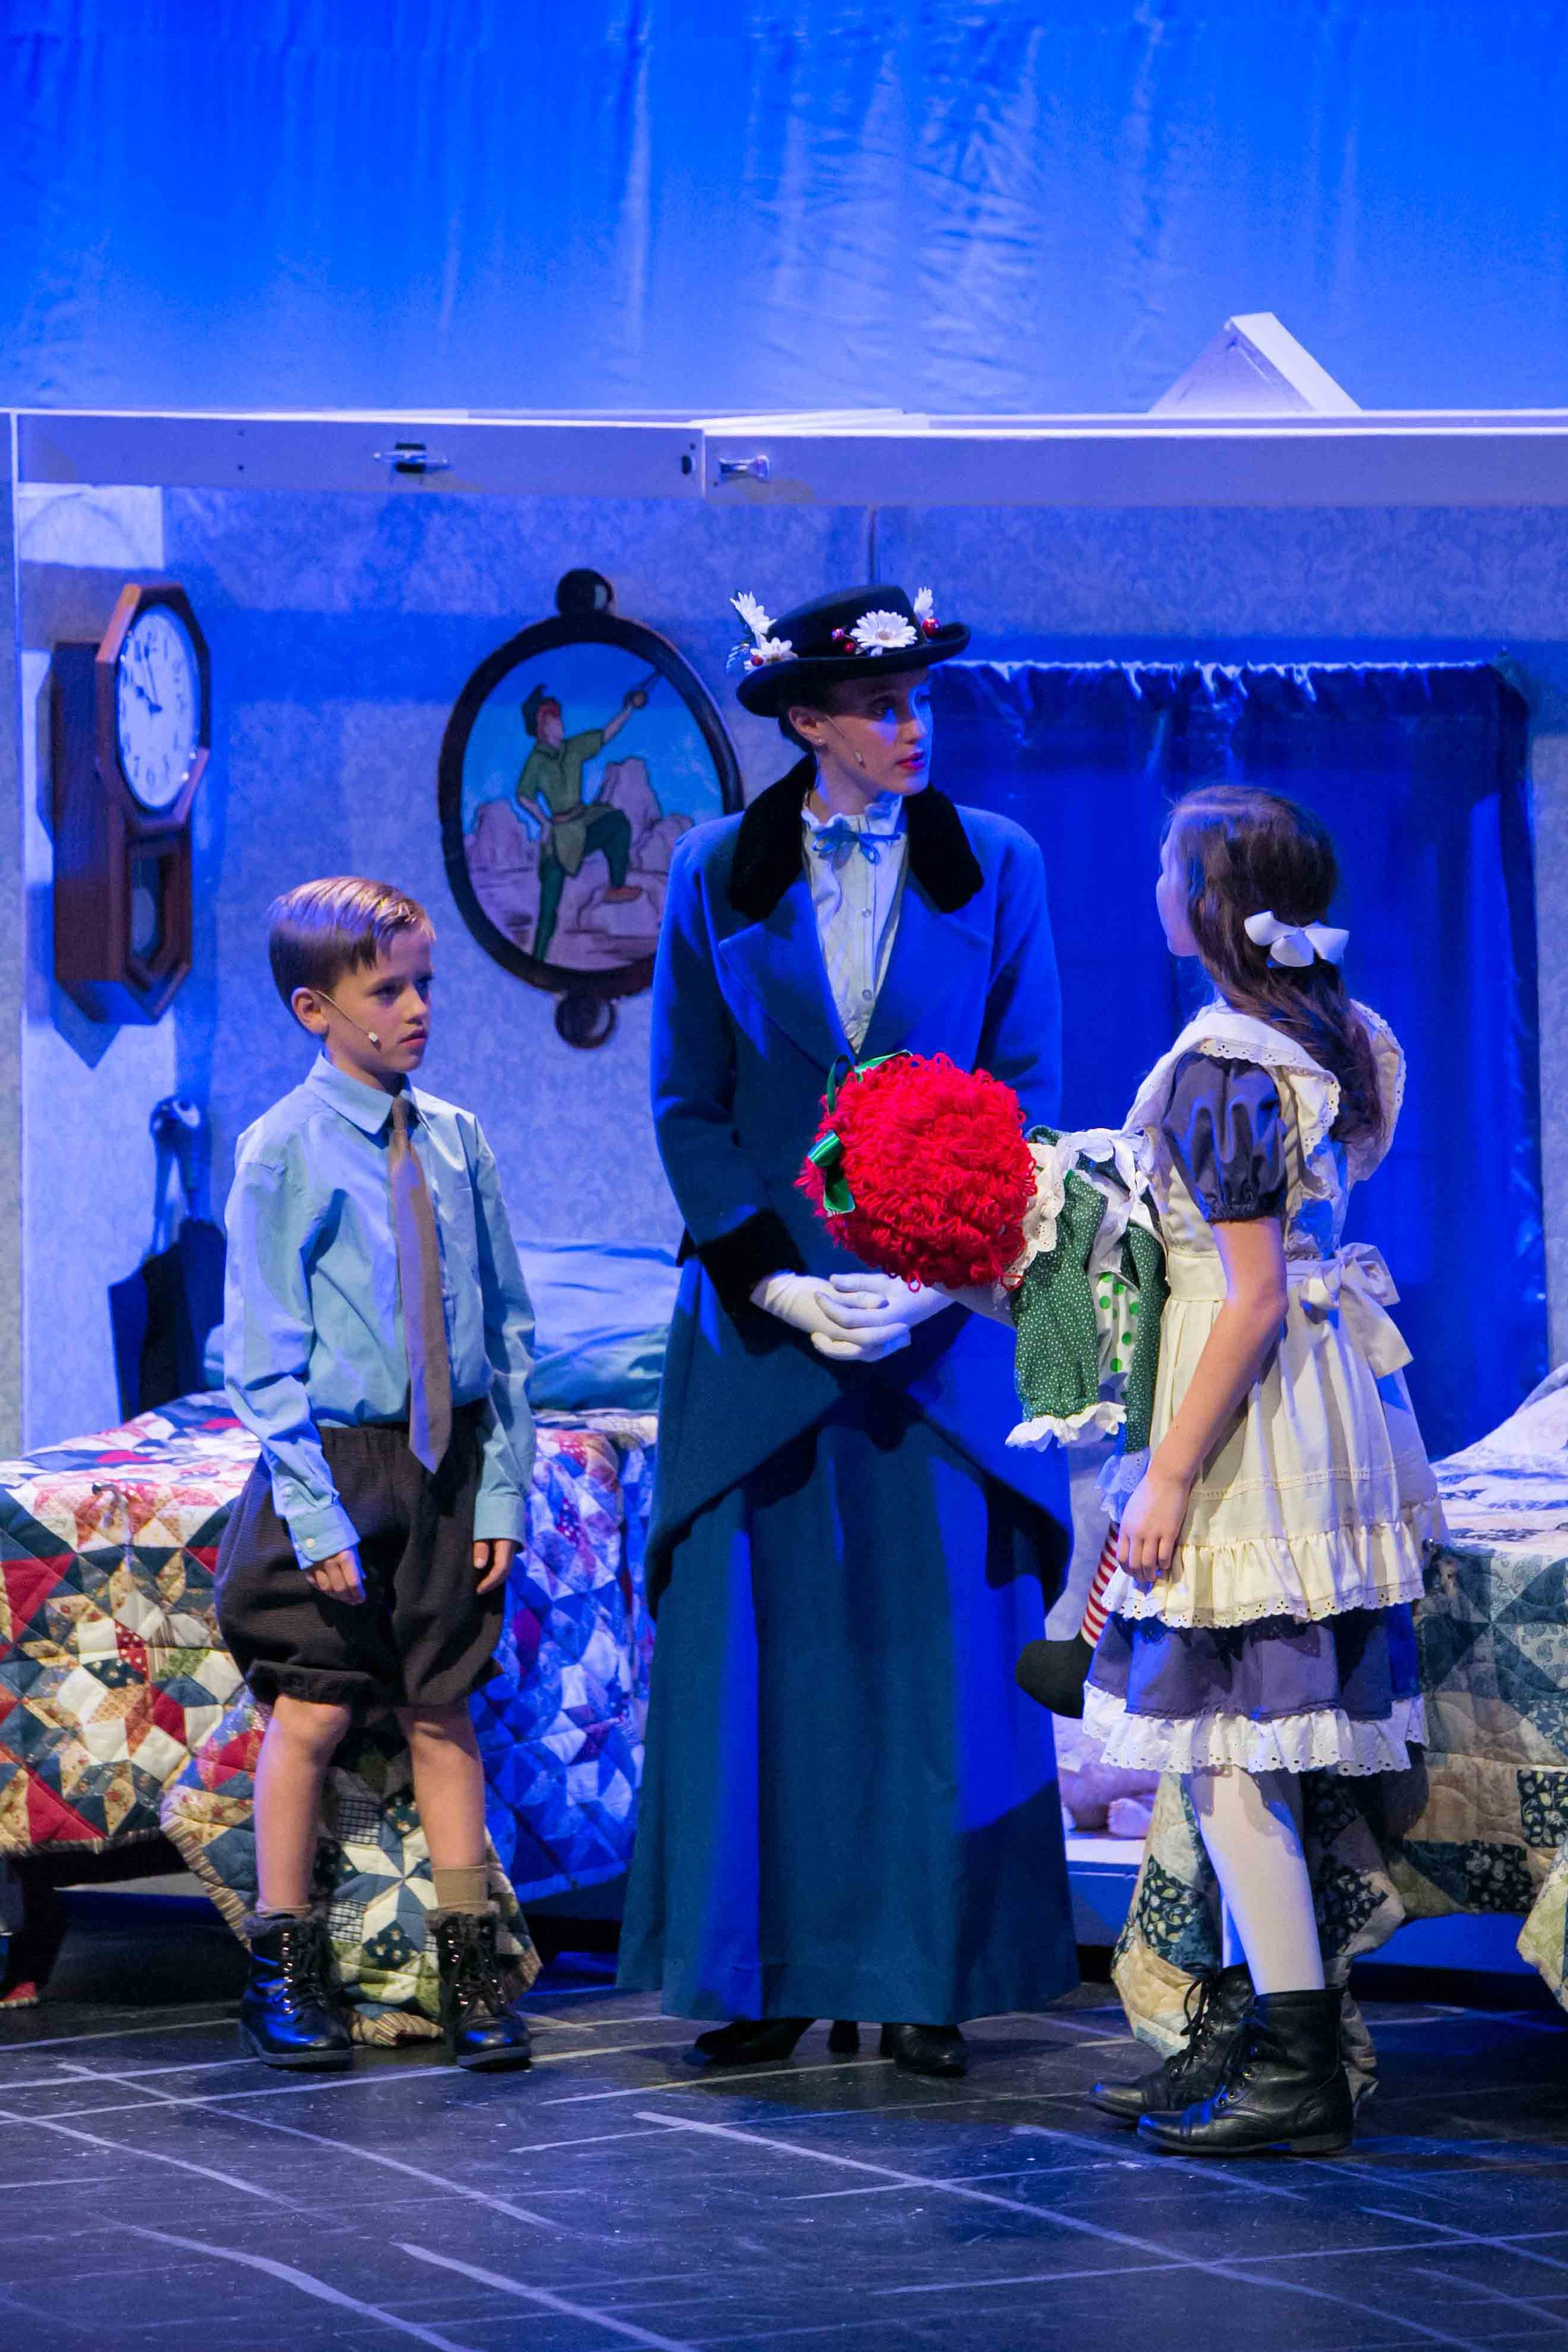 2-4-16 Mary Poppins Proper Cast 0280.jpg